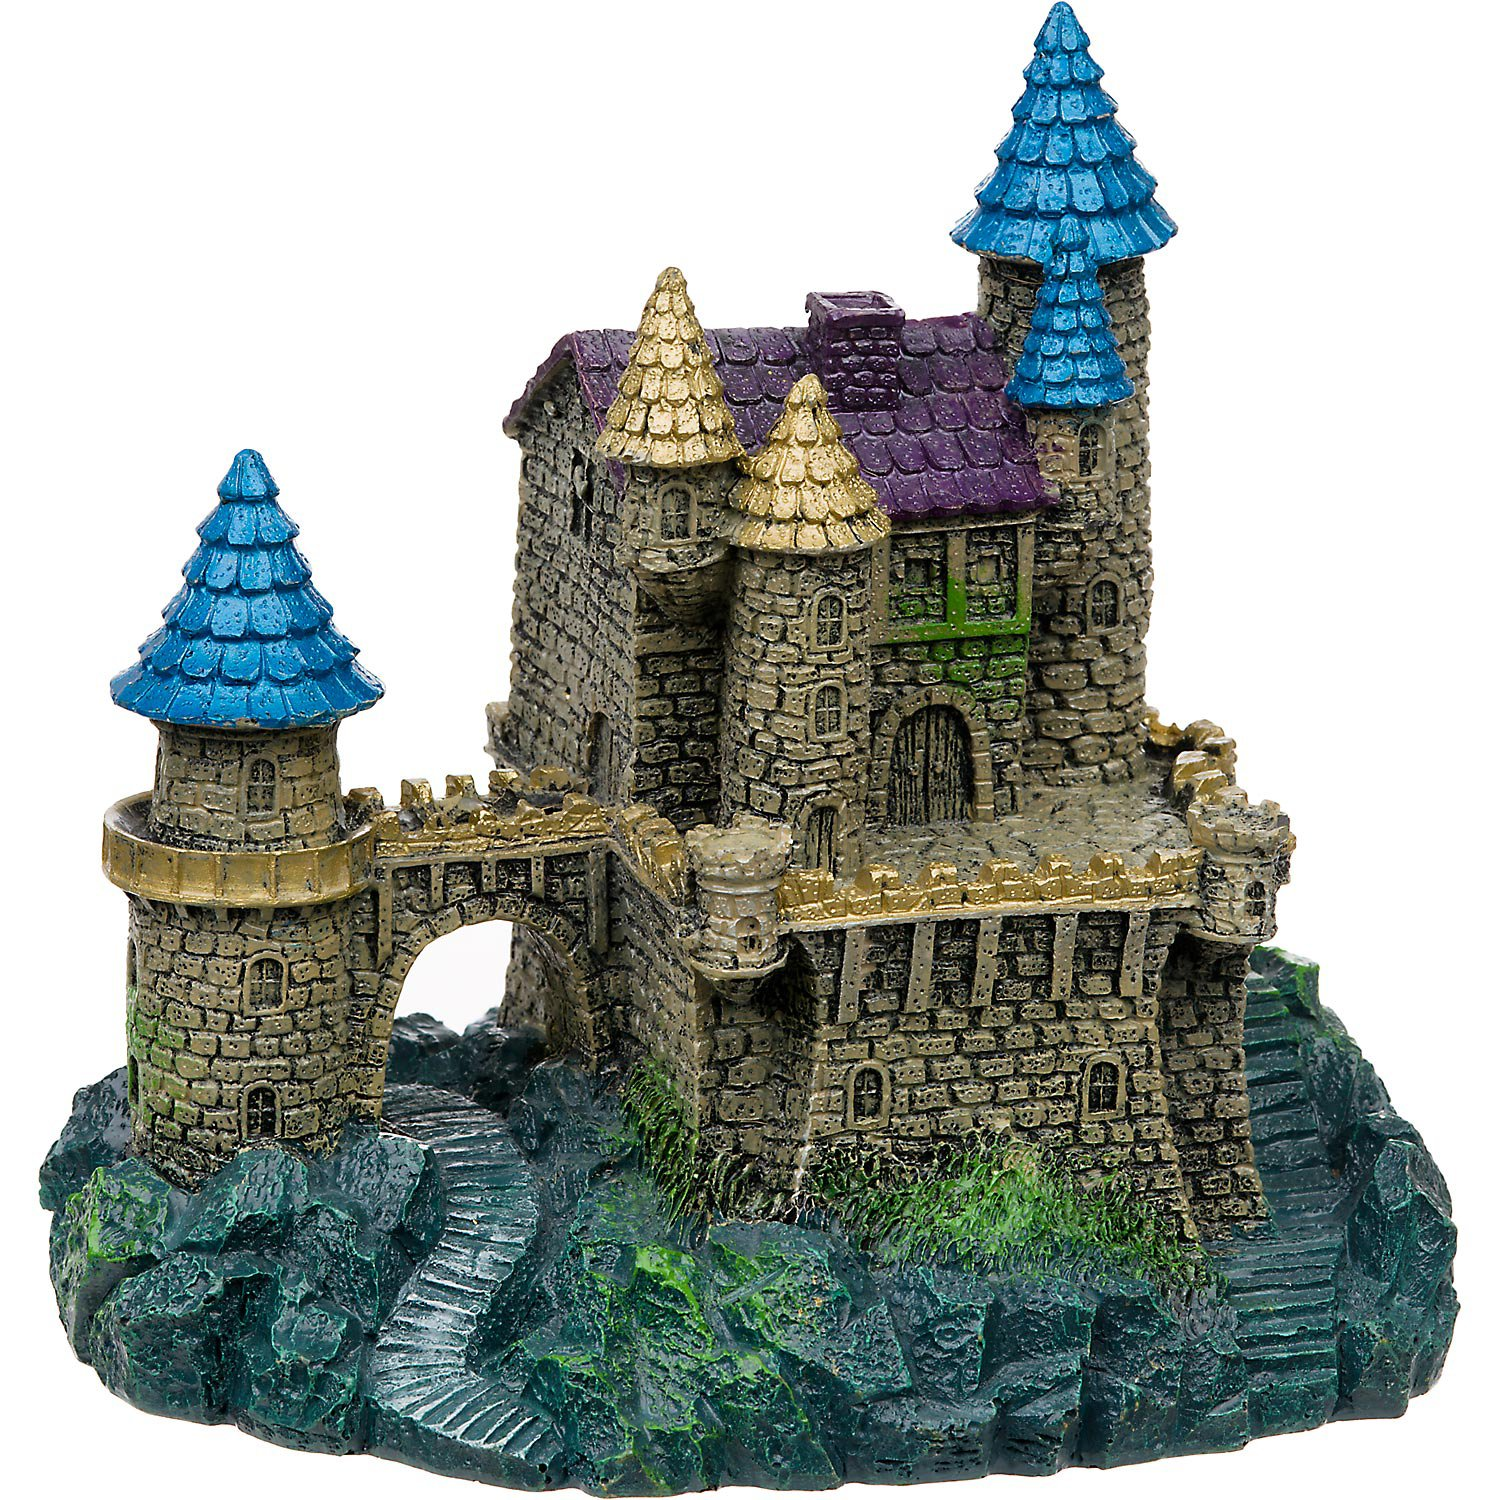 blue ribbon purple & blue roof castle aquarium ornament | petco